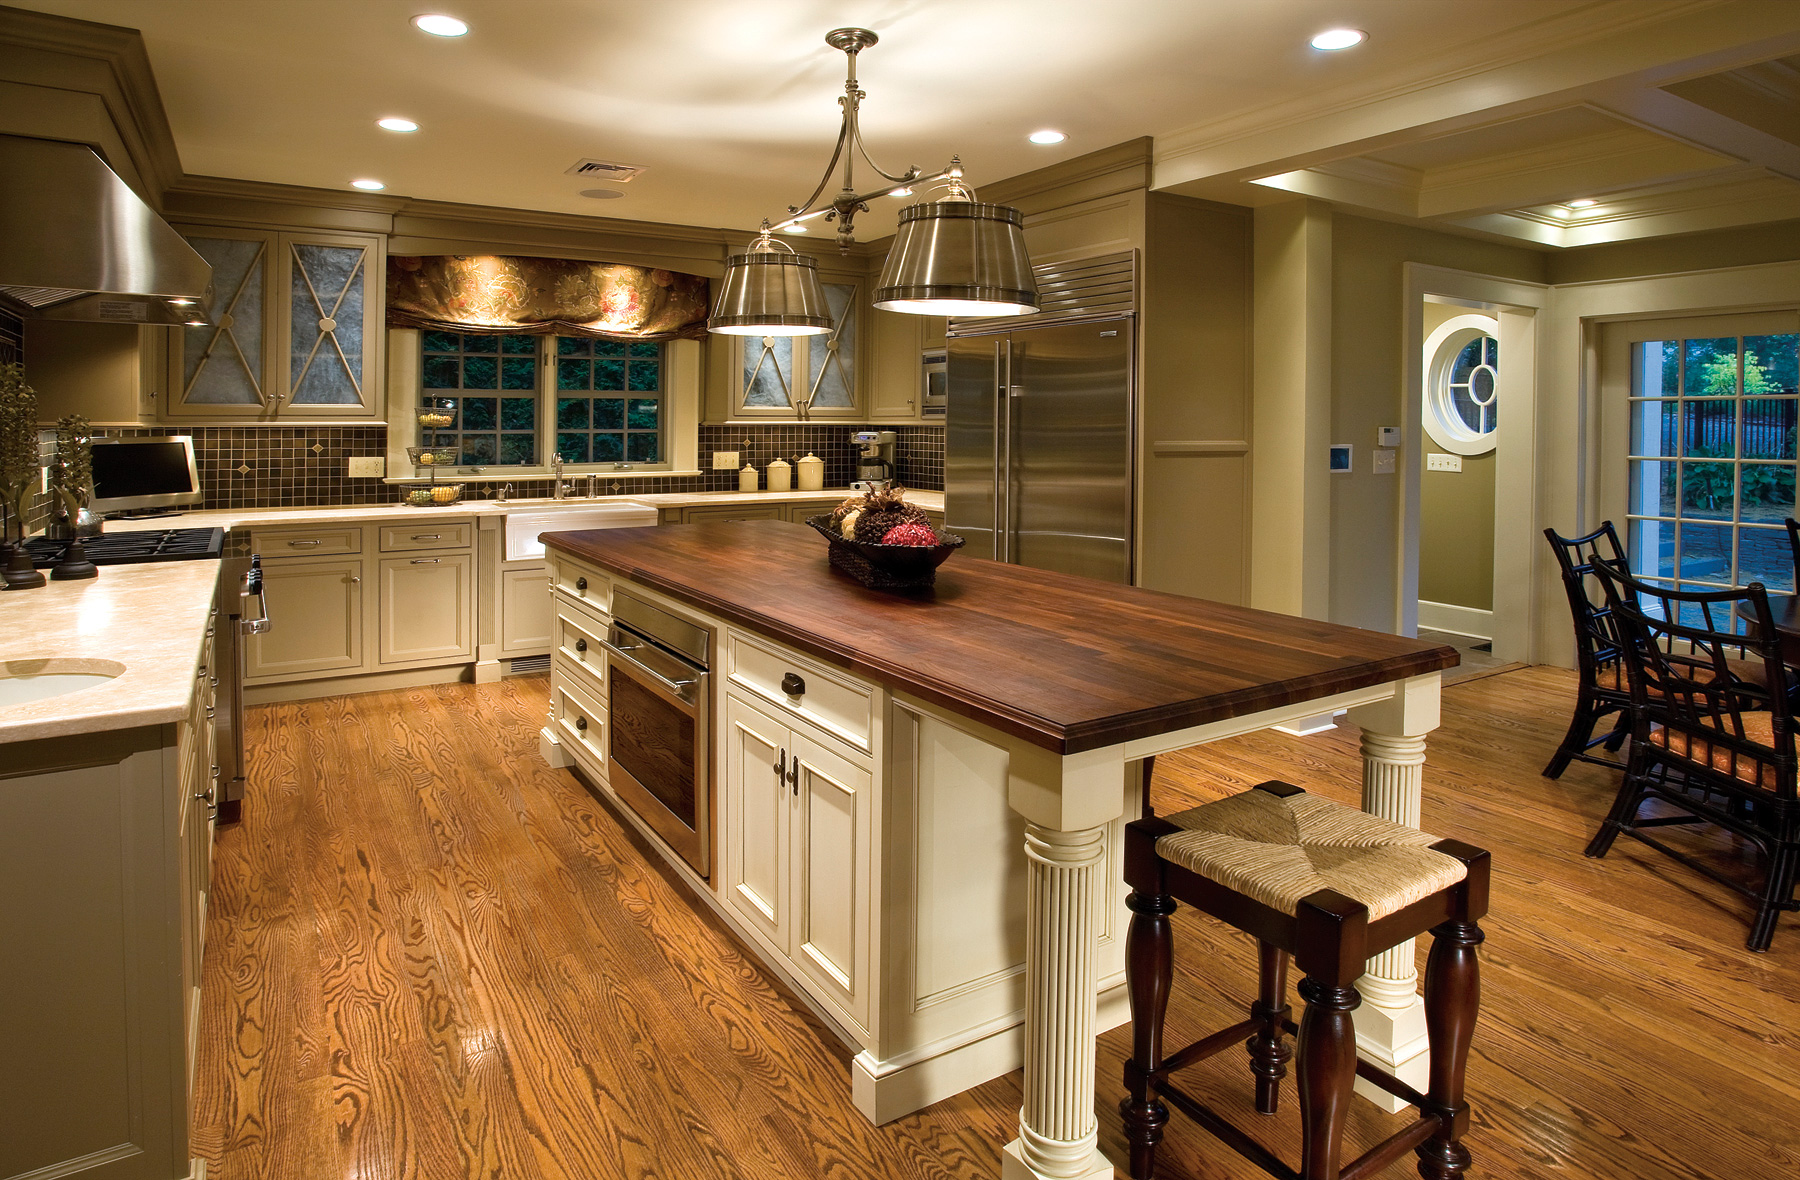 Kitchen Islands – Centerpiece of the Kitchen